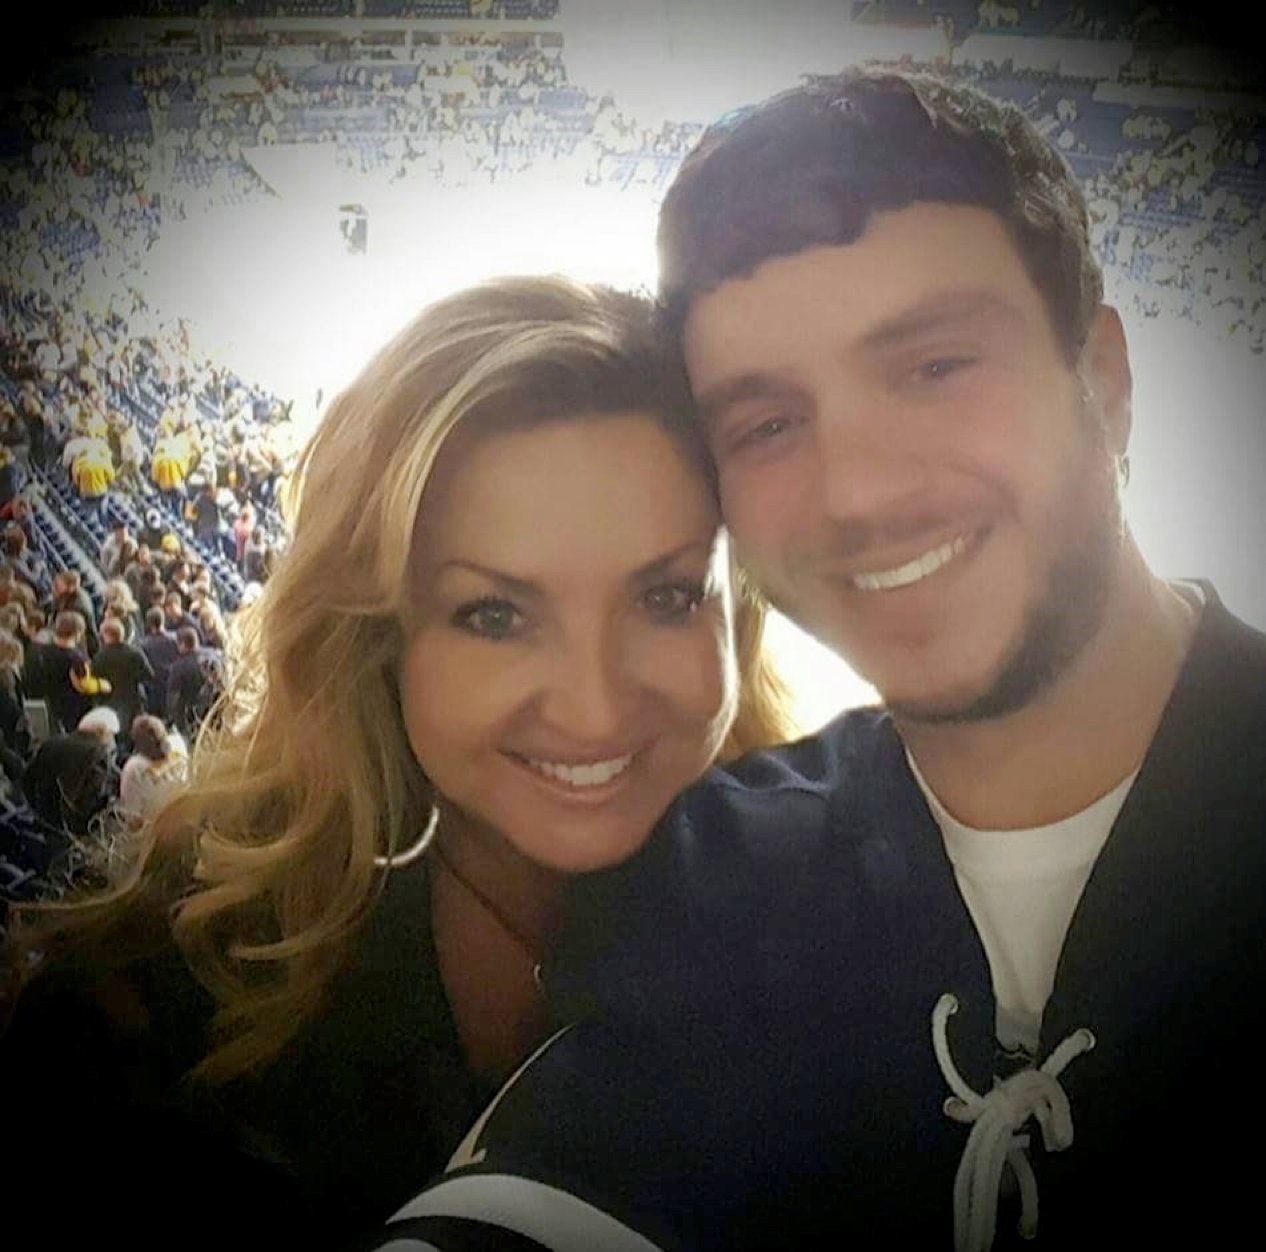 Sonny Melton, right, was among those who were shot and killed in Las Vegas on Sunday night on October 1, 2017. His wife, Heather Melton (left), an orthopedic surgeon at Innovative Orthopedics survived the shooting.